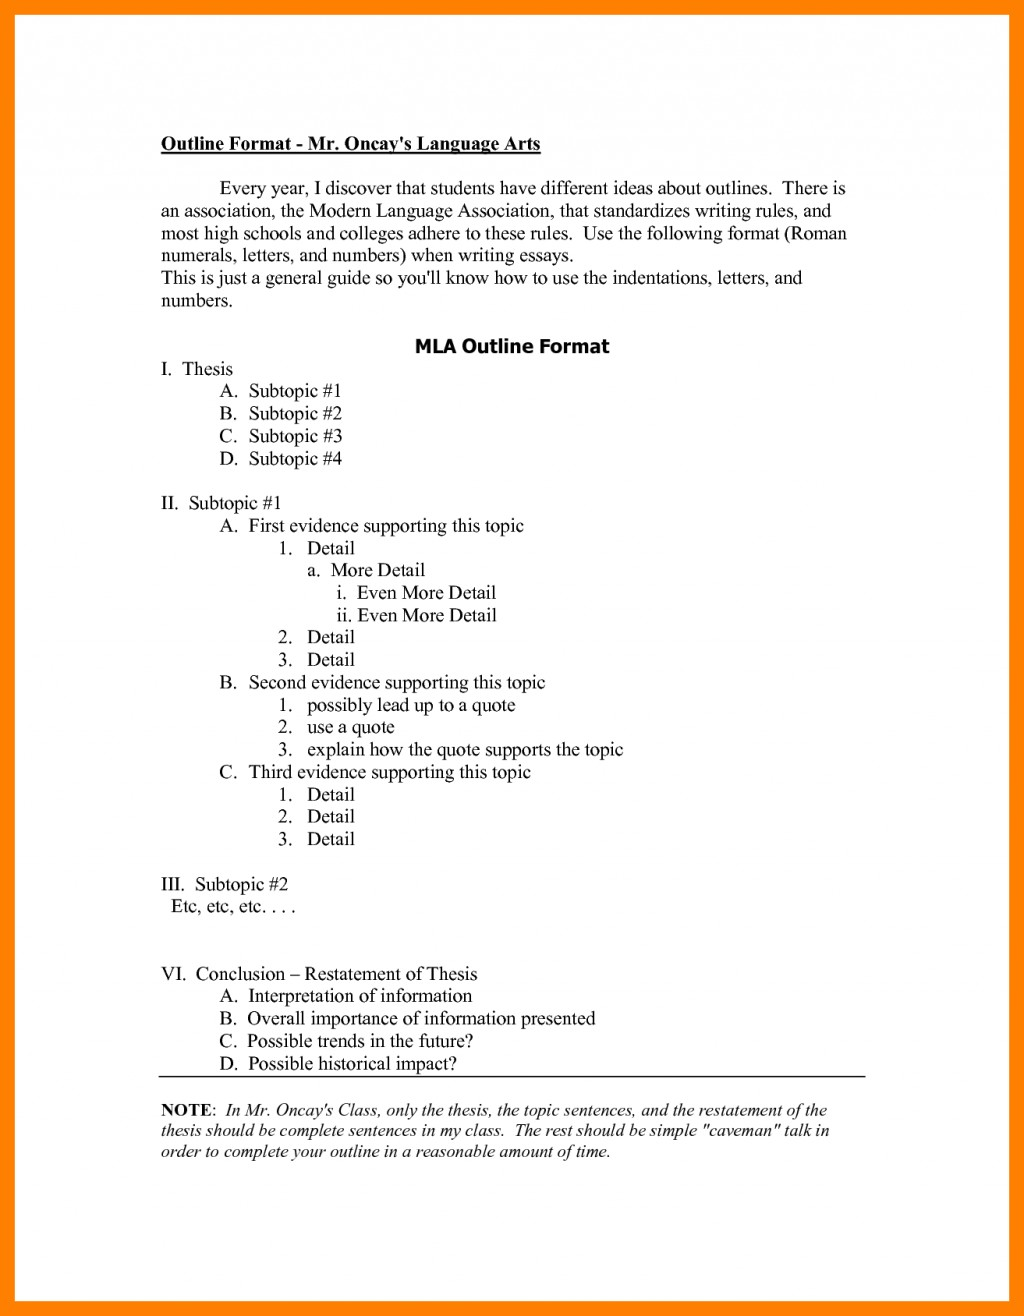 020 Research Paper 20research Example20a High School Outline Format Pear Tree Digital Citations20 1024x1316 Rare Career Sample Example Large